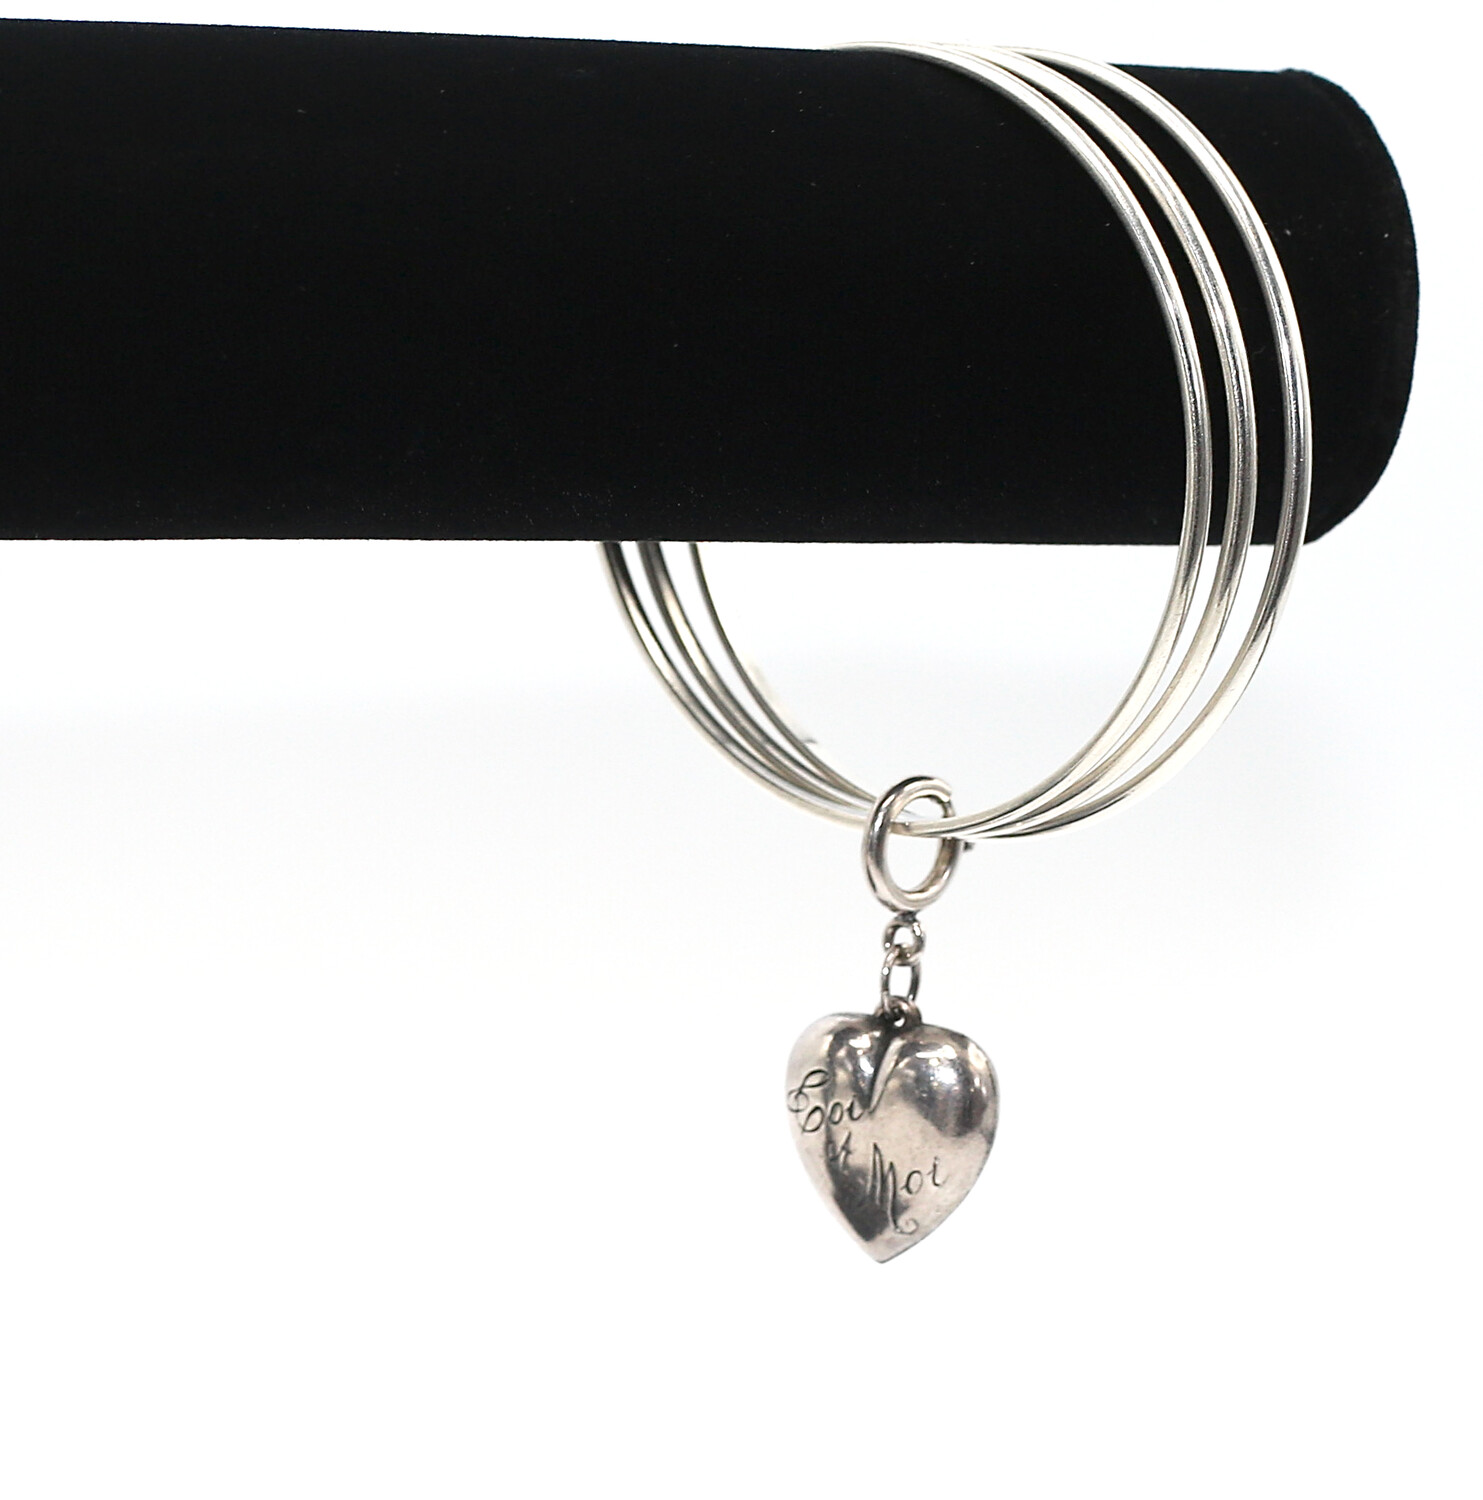 CLASSIC SILVER BANGLE with SILVER PUFFY HEART CHARM